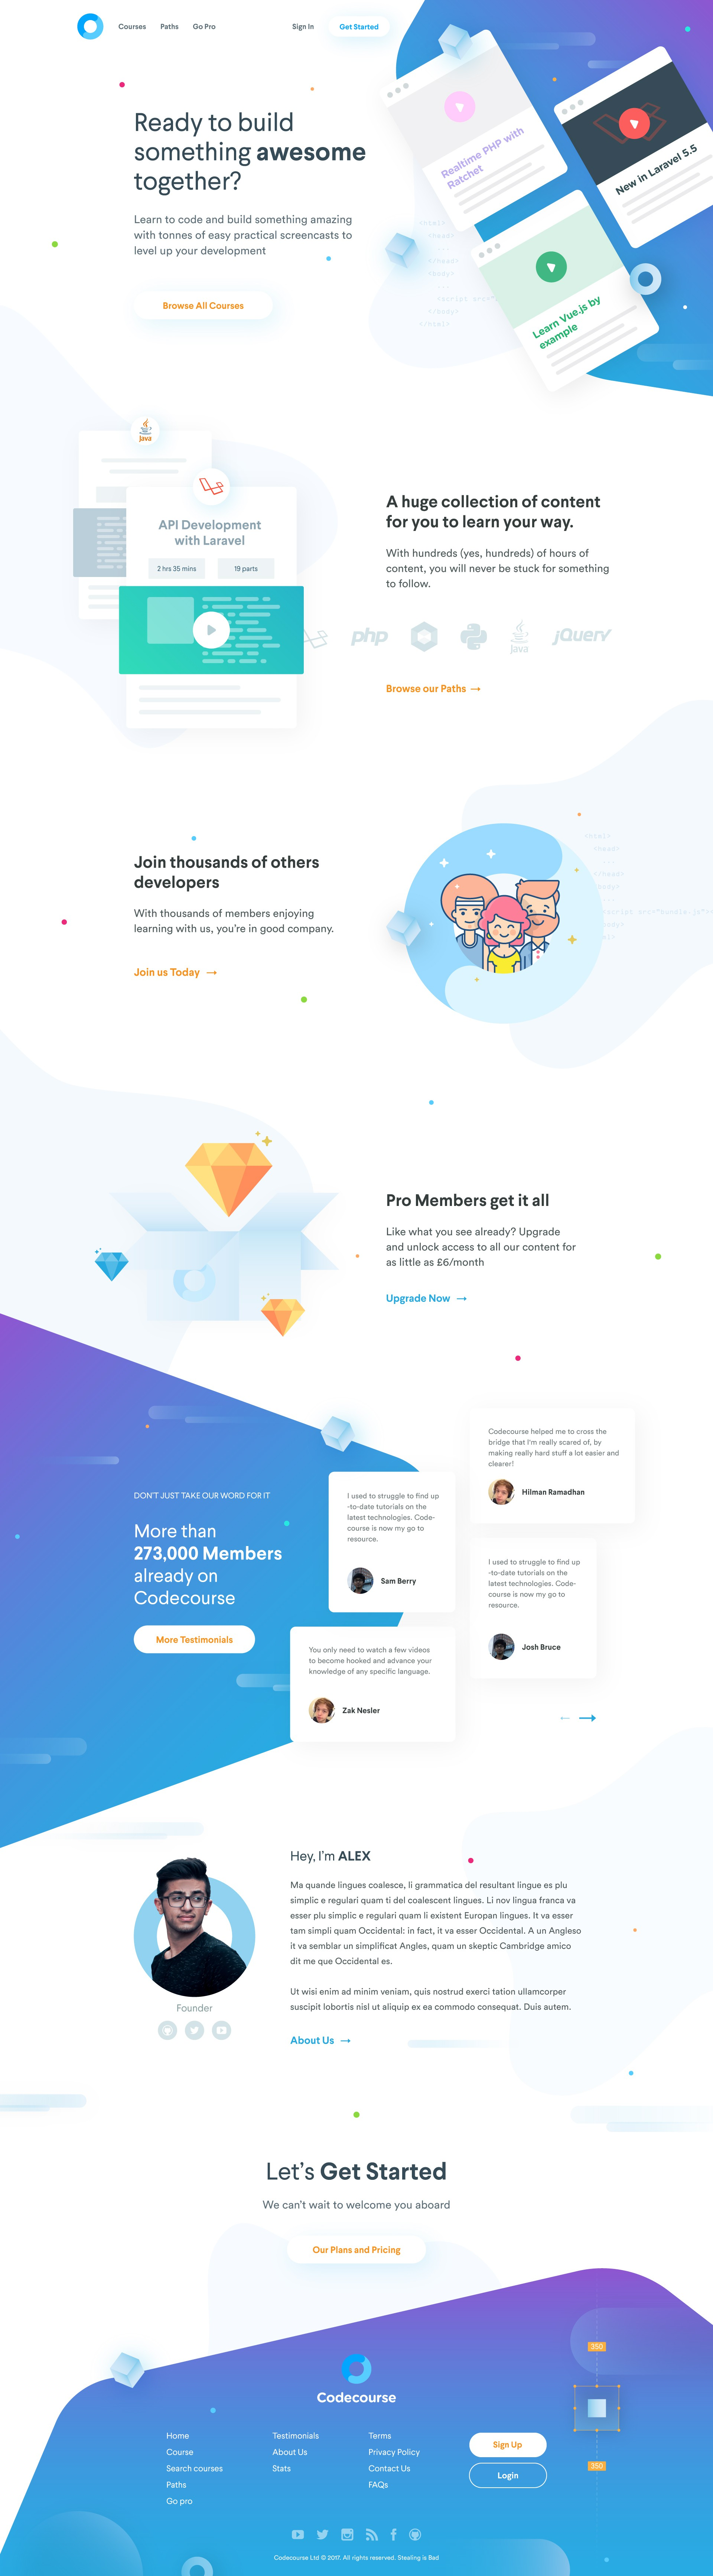 Codecourse needs an awesome new homepage